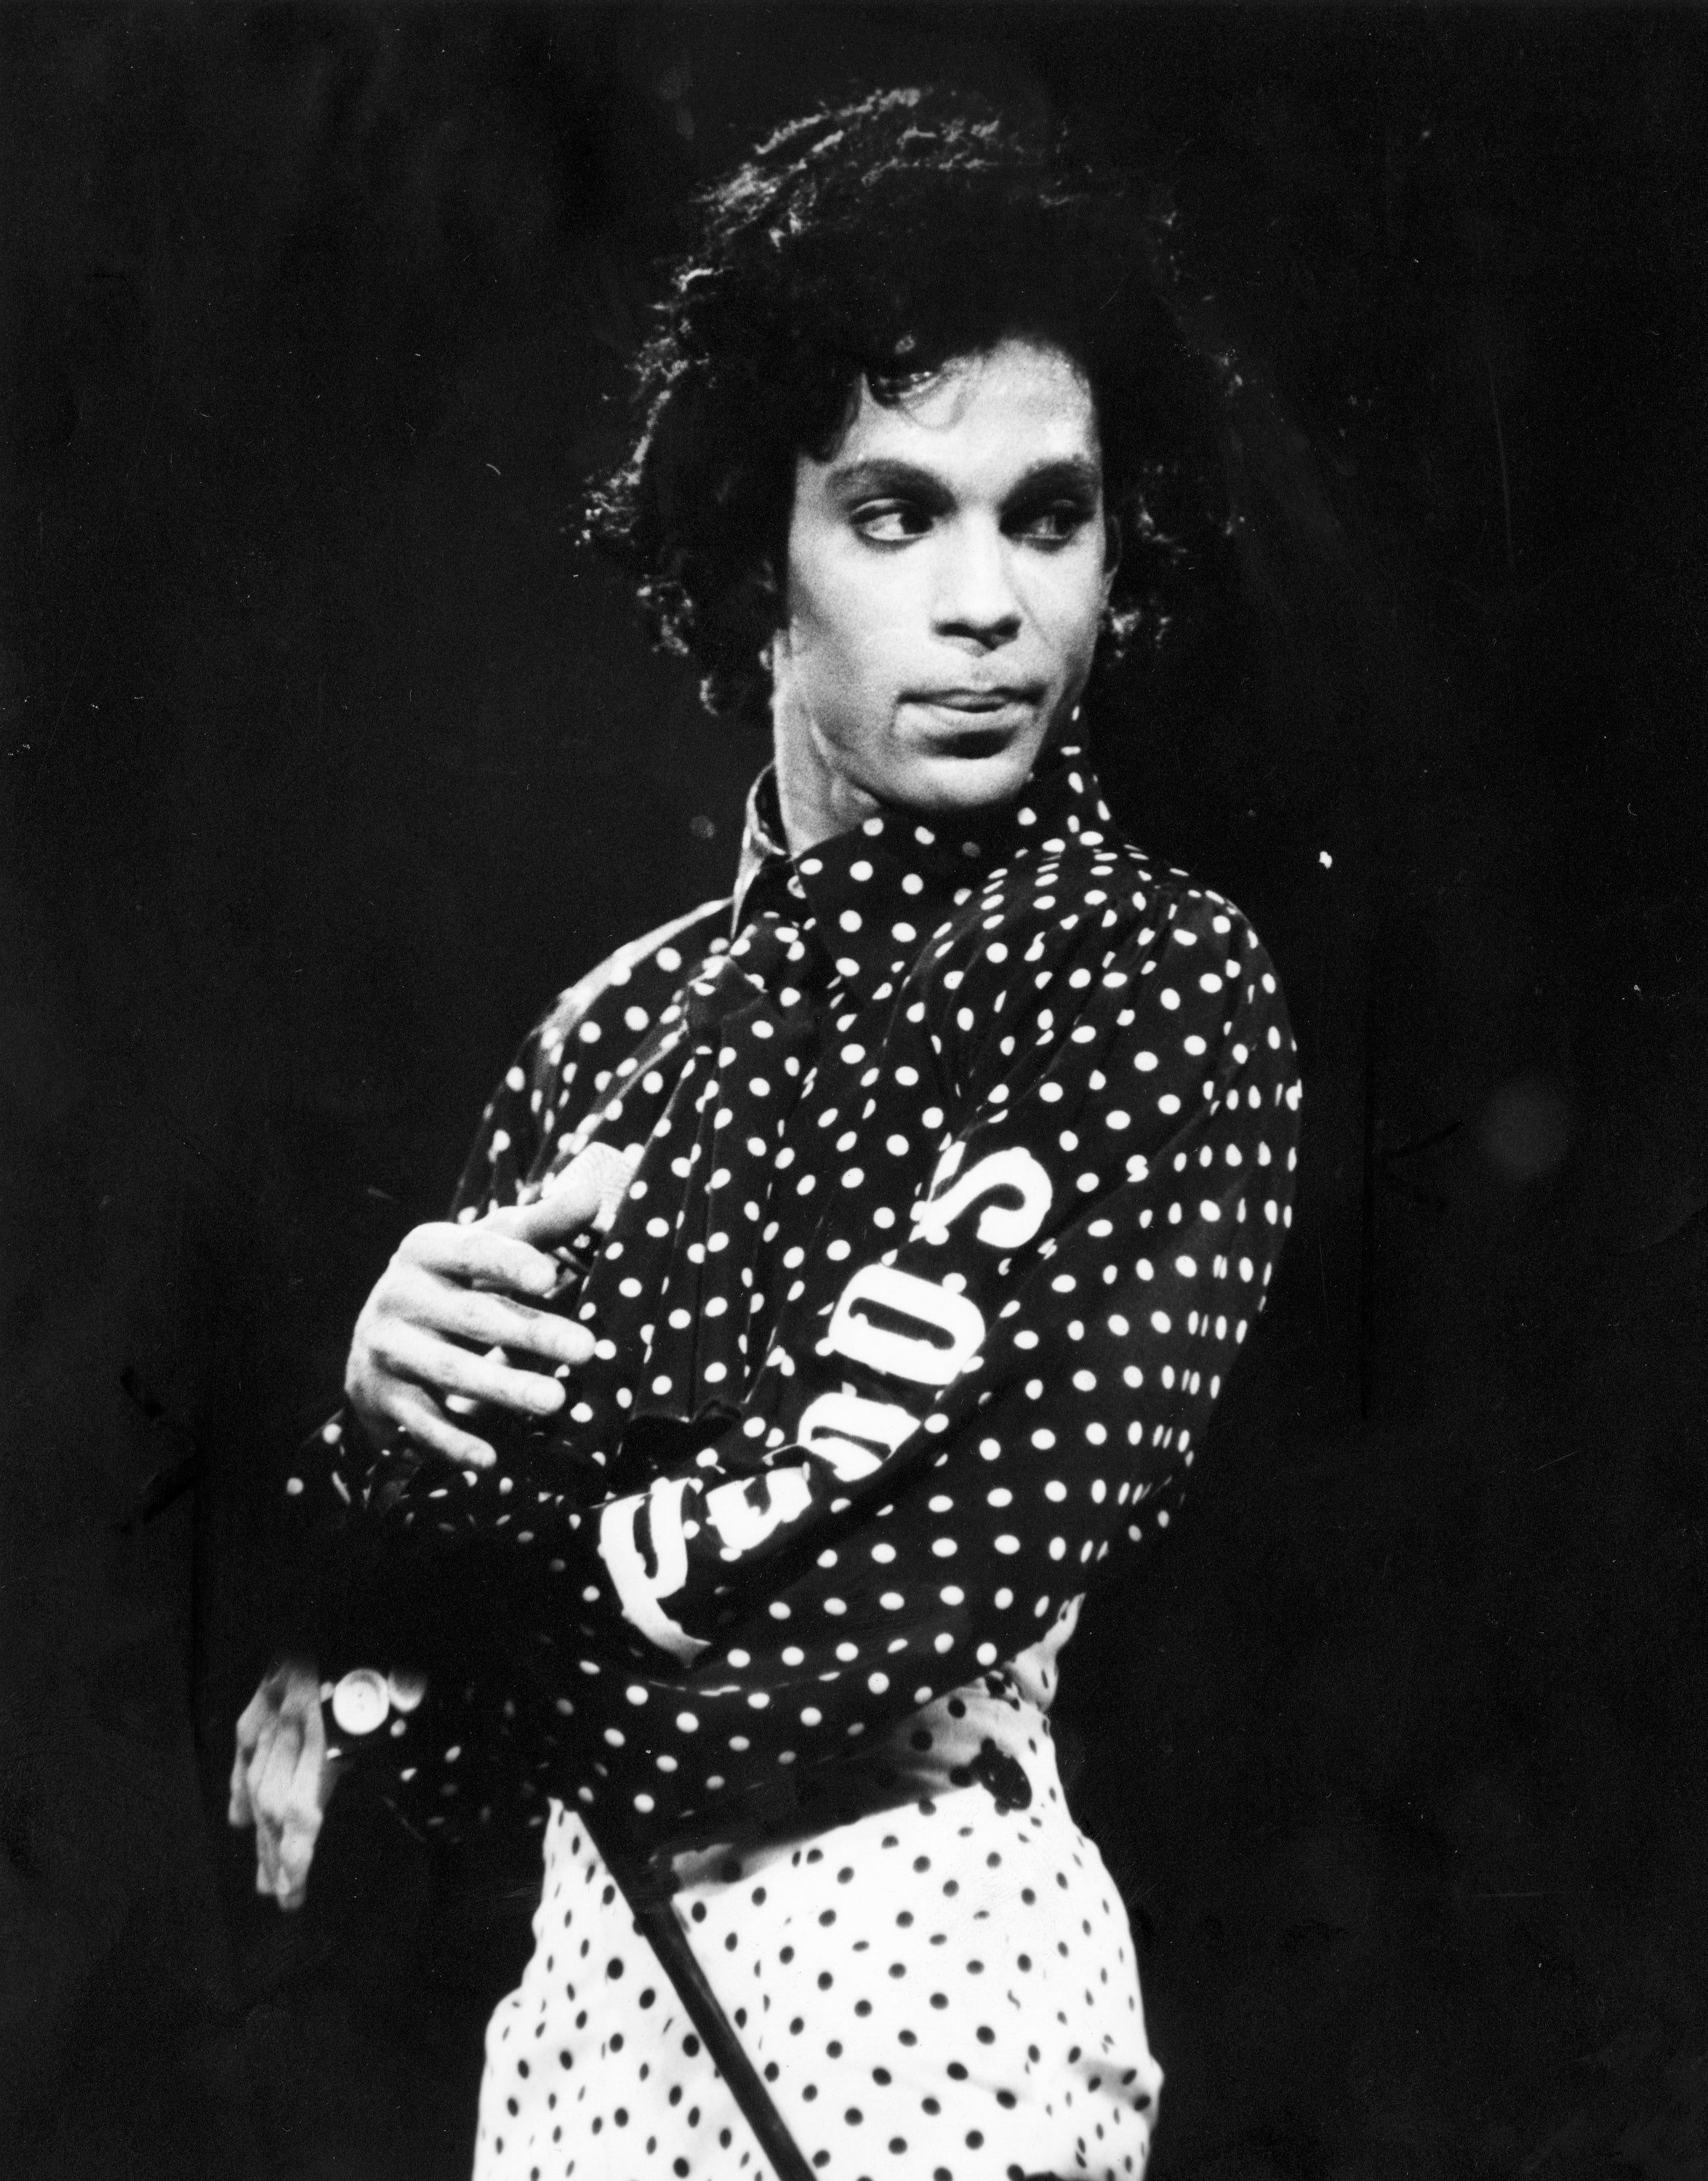 Prince performs at the Worcester Centrum on Oct. 20, 1988.